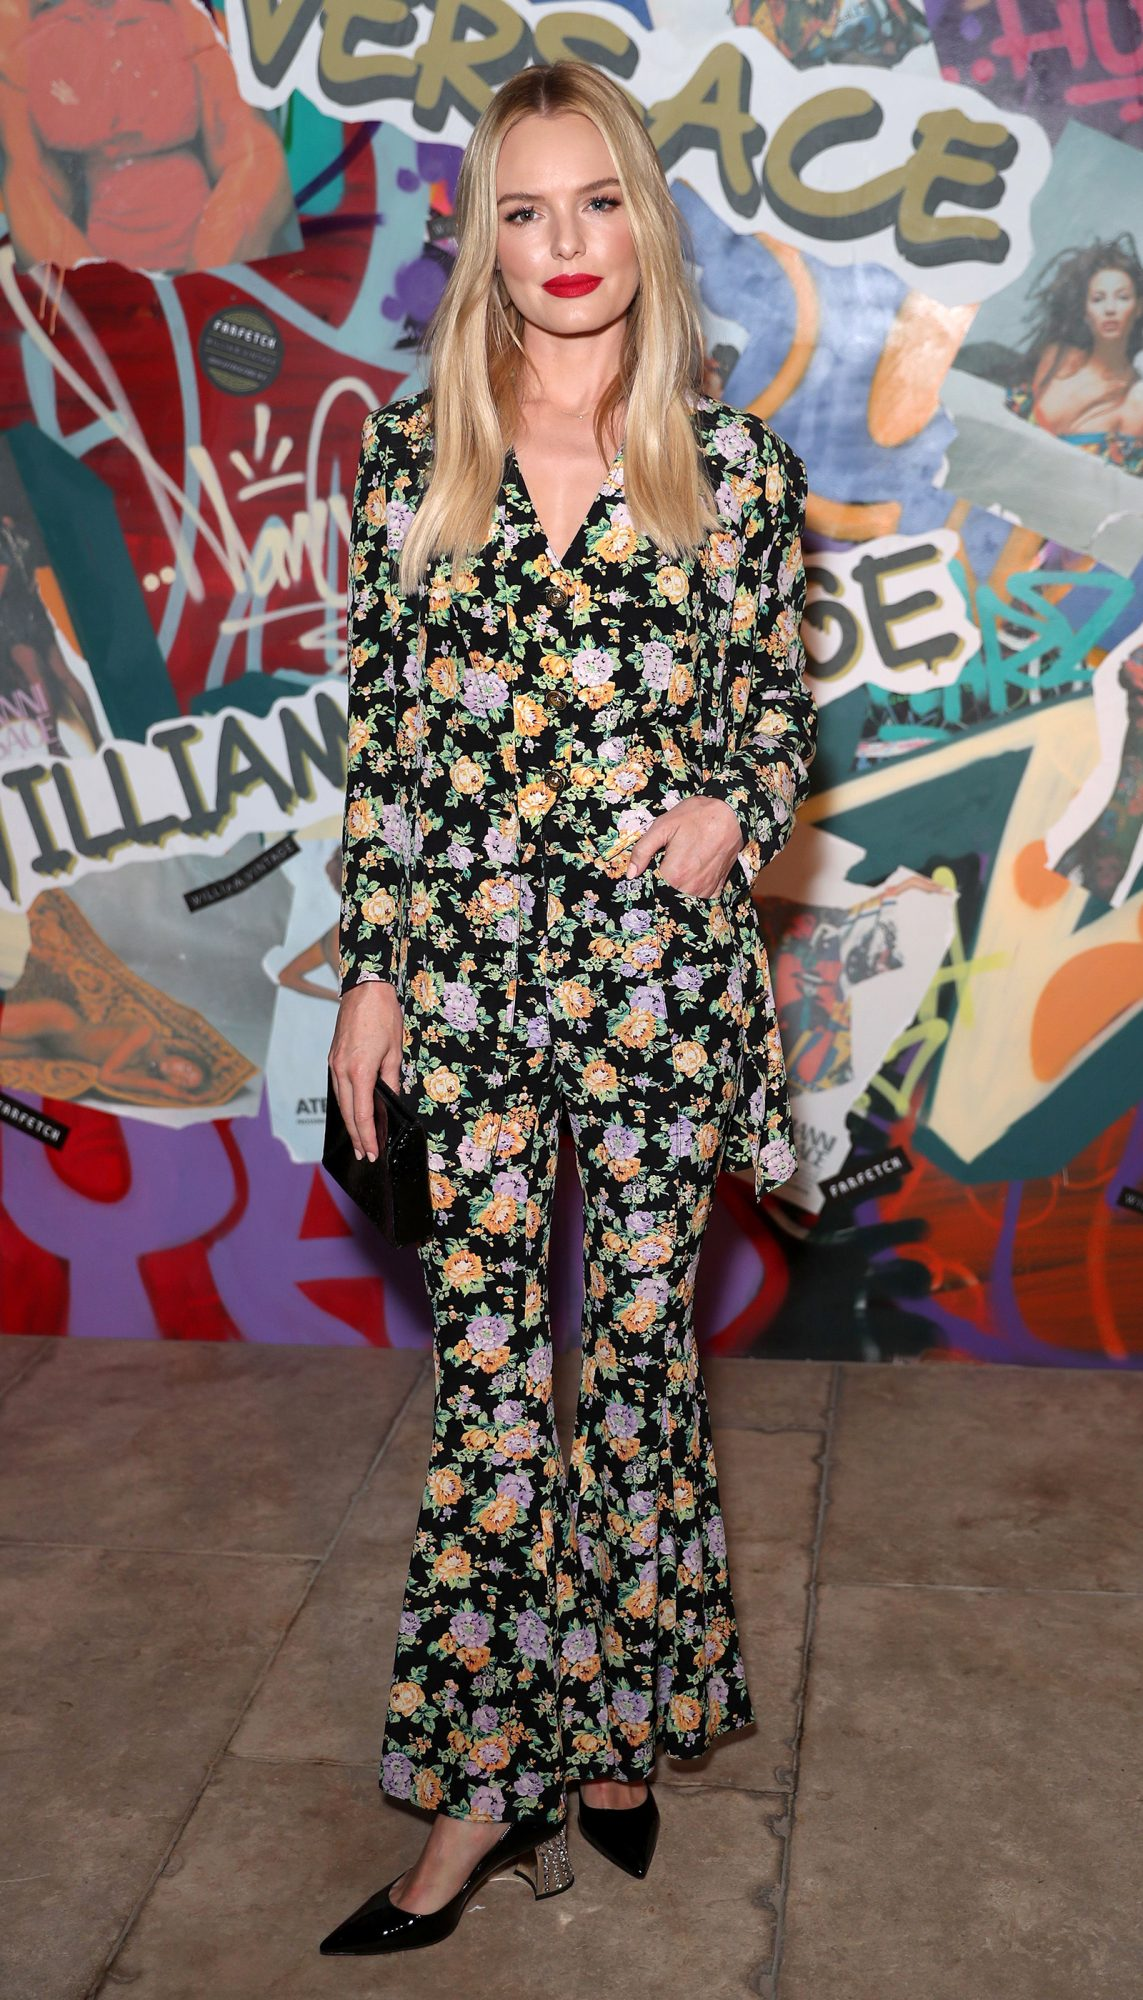 William Vintage x Farfetch Unveiling of Gianni Versace Archive, Los Angeles, USA - 05 Oct 2017